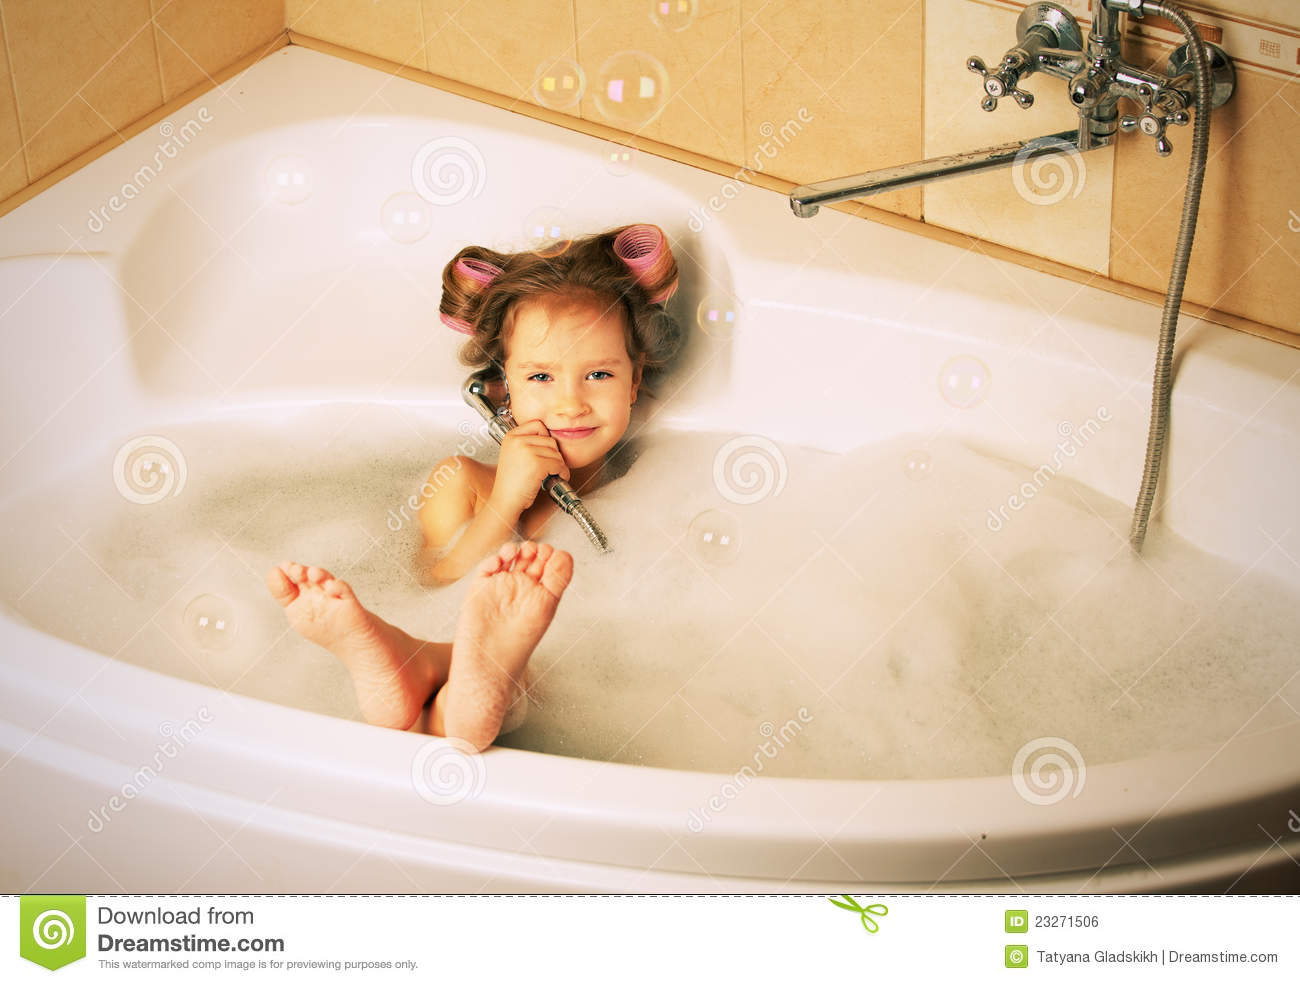 Glamour Little Girl In The Bathtub Stock Photo - Image of cheerful ...